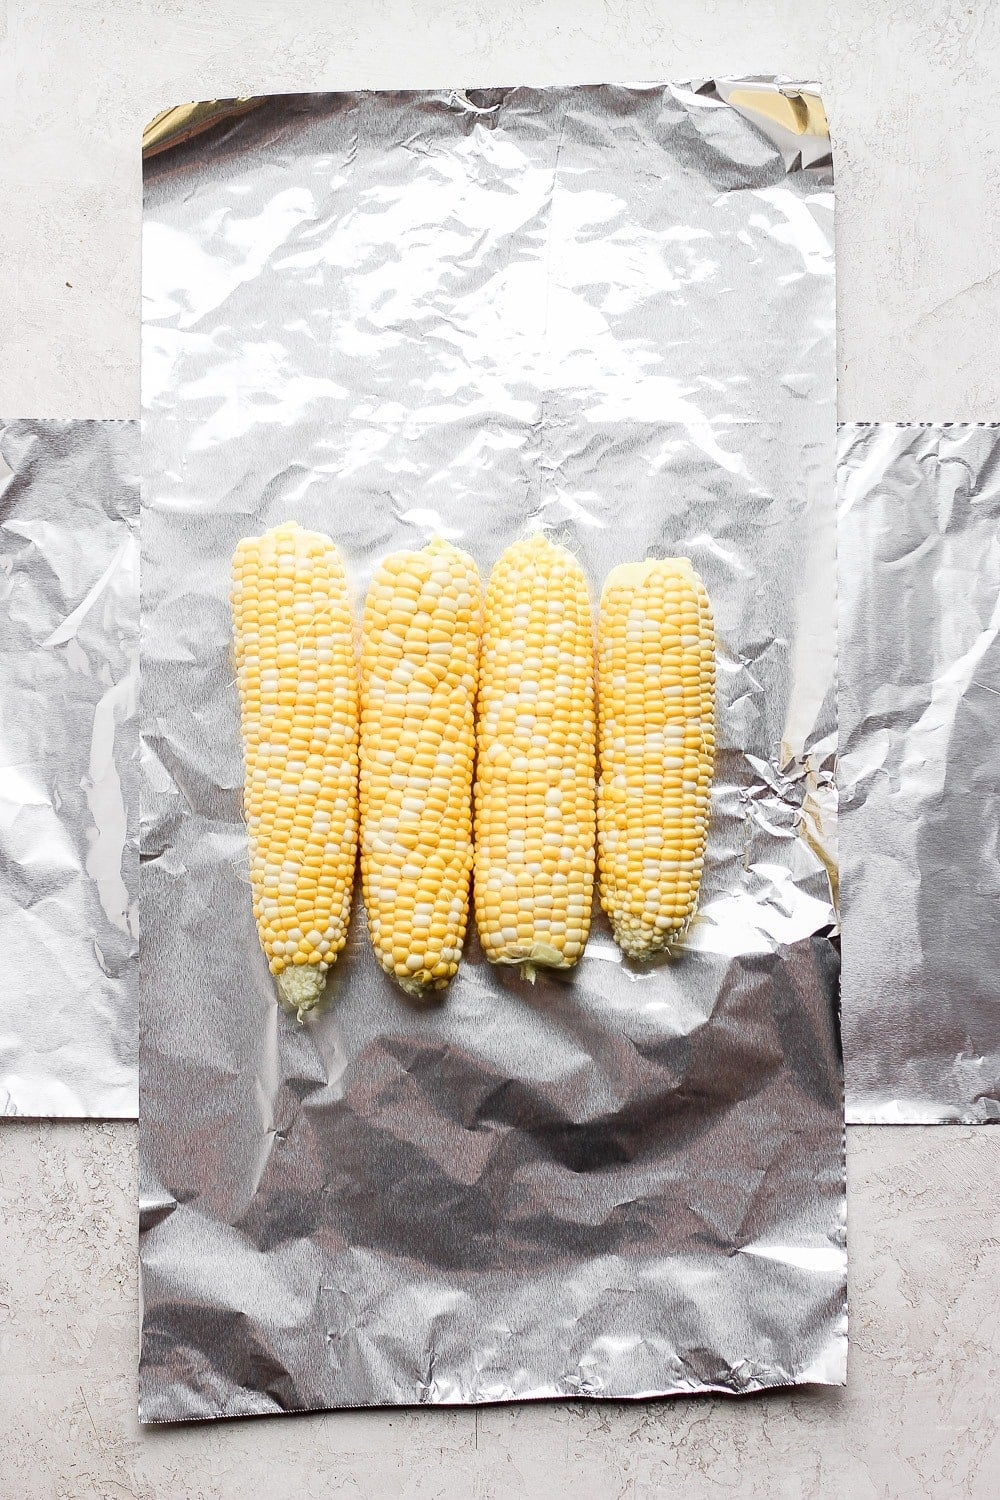 tin foil laid out with 4 ears of corn on it